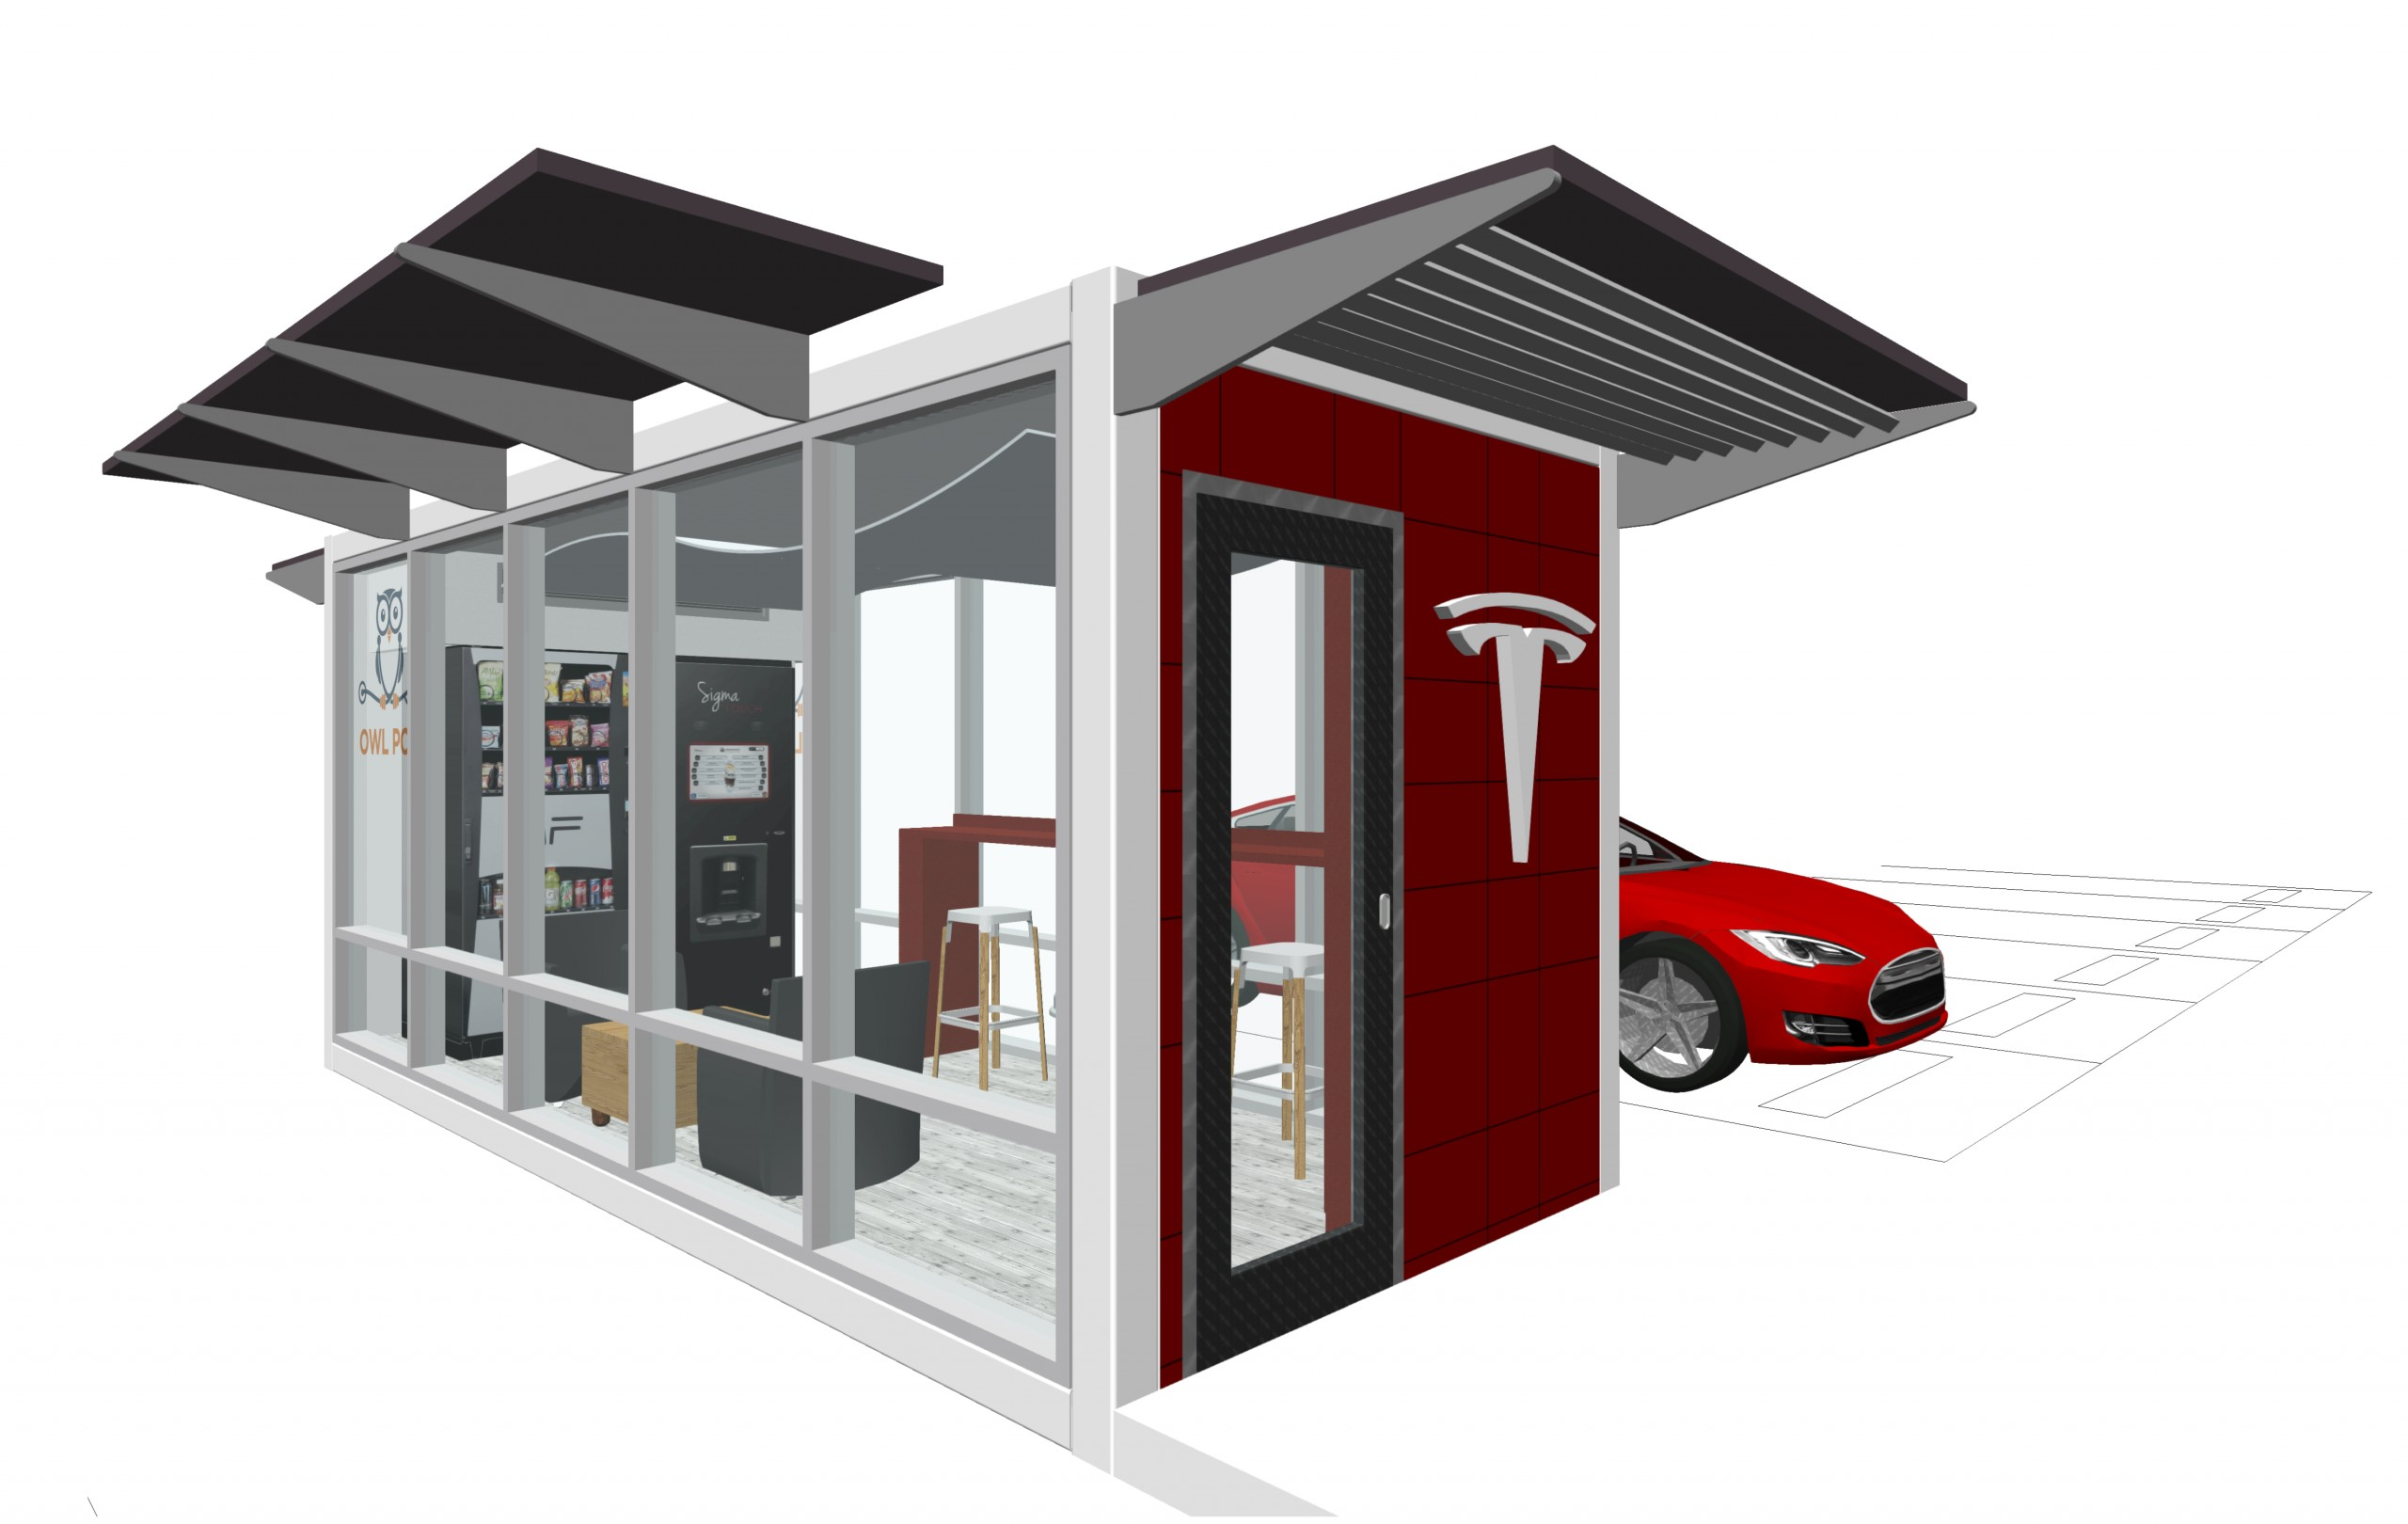 Exterior rendering showing solar panel roof, white modular steel and glass construction with red accents and electric vehicle in background.